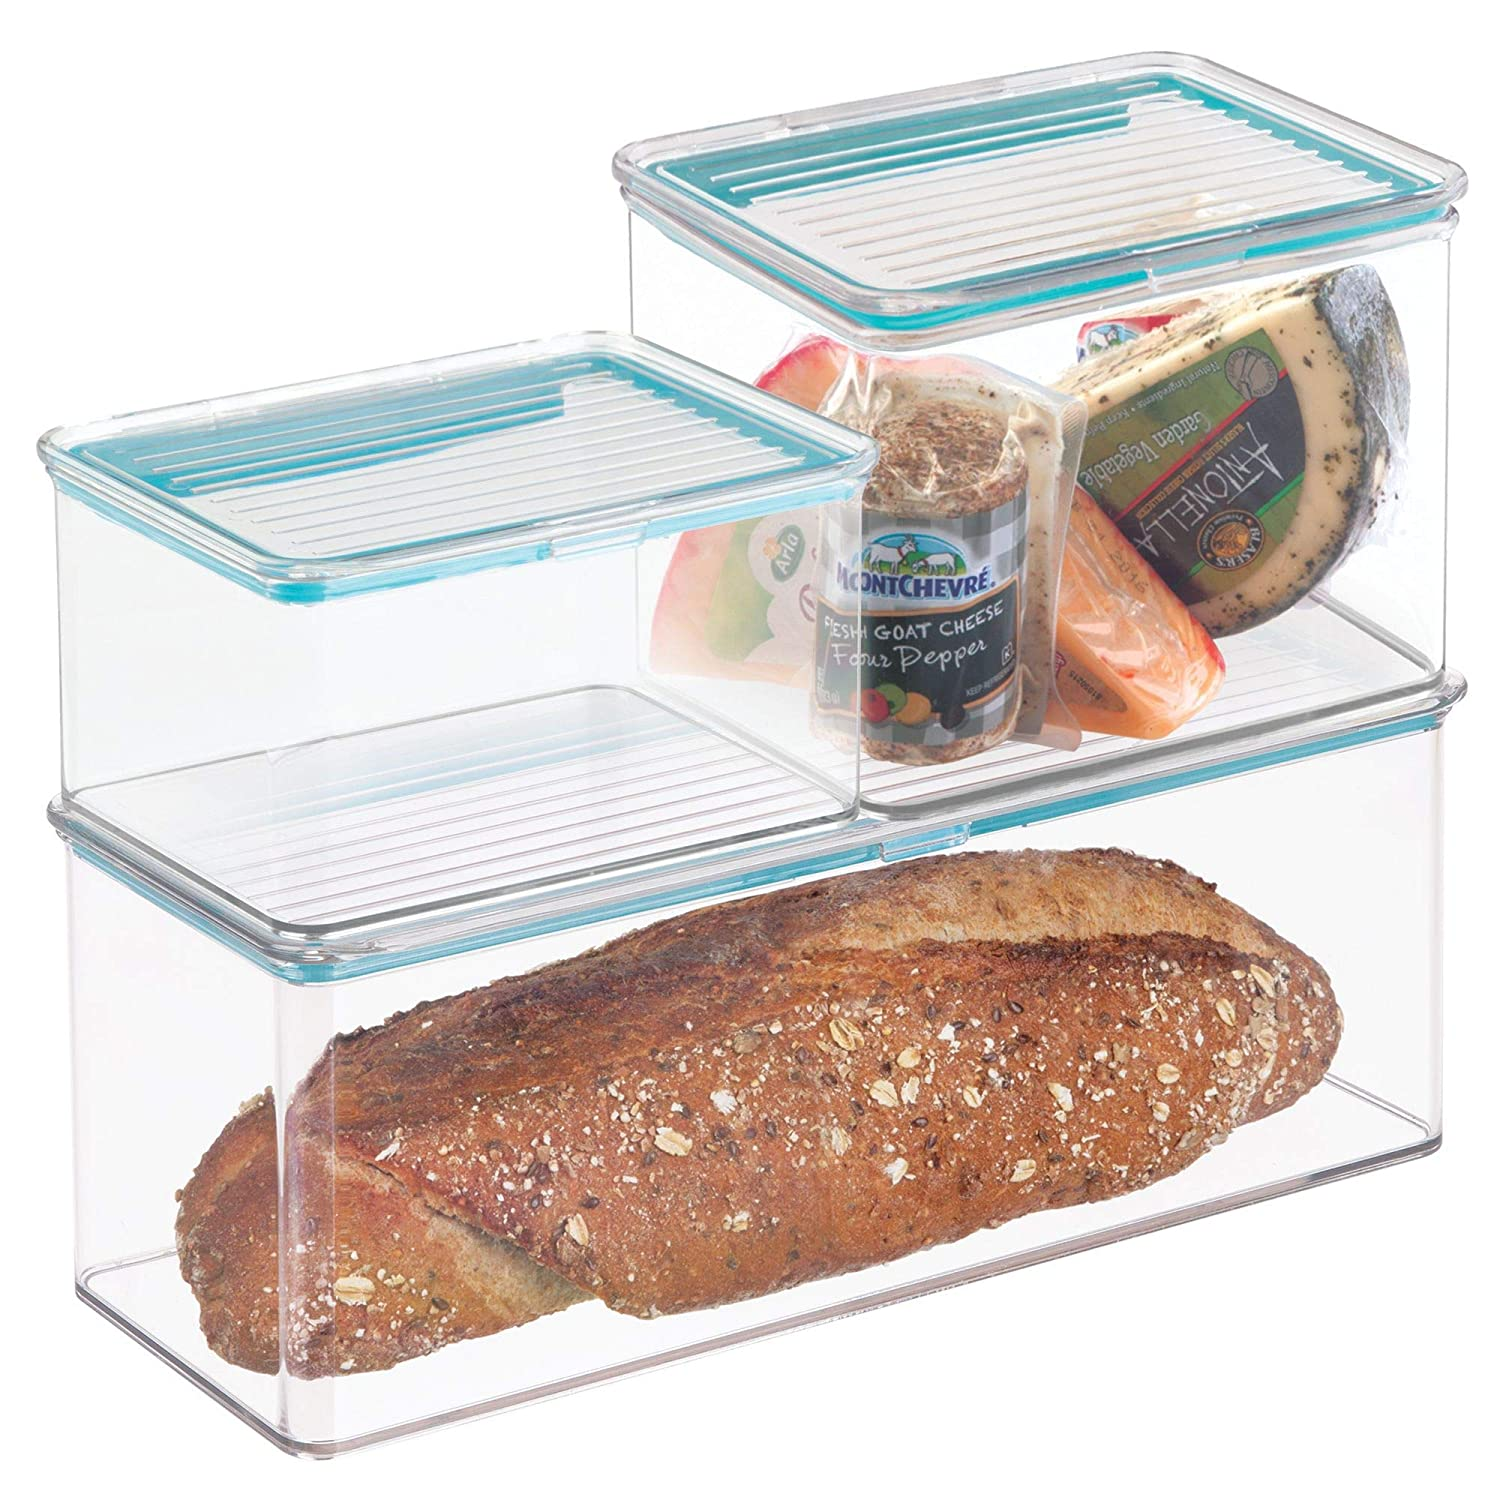 mDesign Airtight Stackable Kitchen Pantry Cabinet or Refrigerator Food Storage Containers, Attached Hinged Lids - Compact Bins for Pantry, Refrigerator, Freezer - BPA Free, Food Safe - Set of 3, Clear